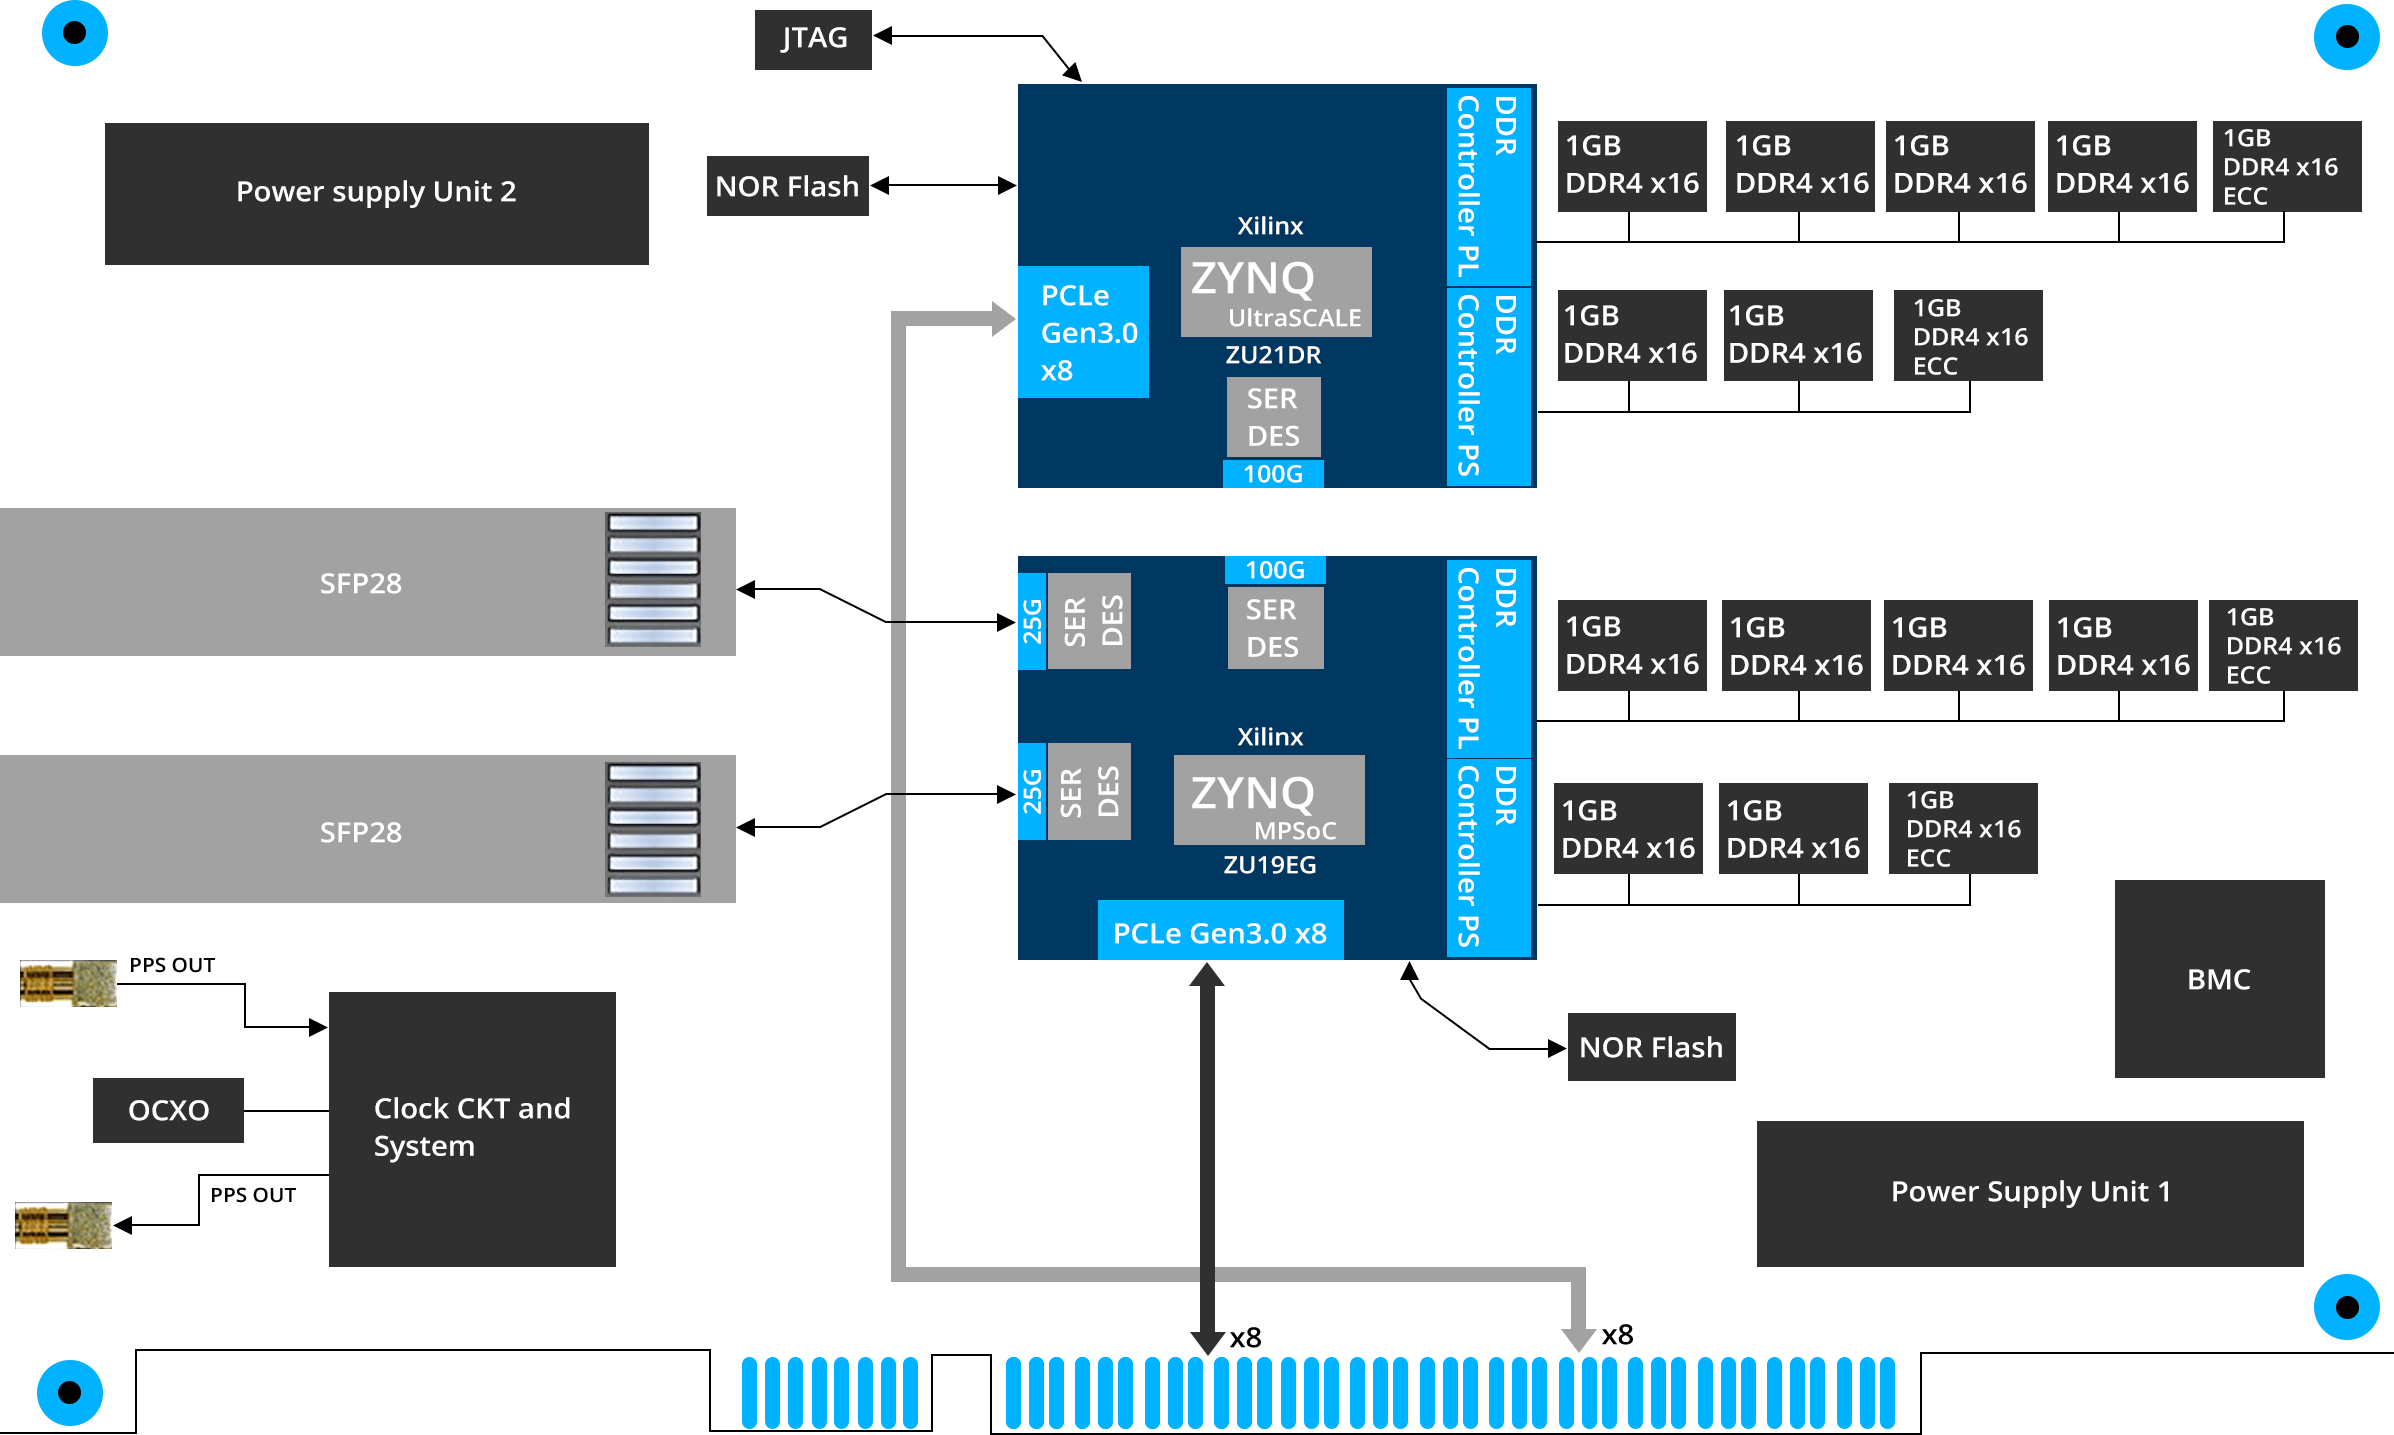 VVDN - ADYA TelcoNIC Card Block Diagram